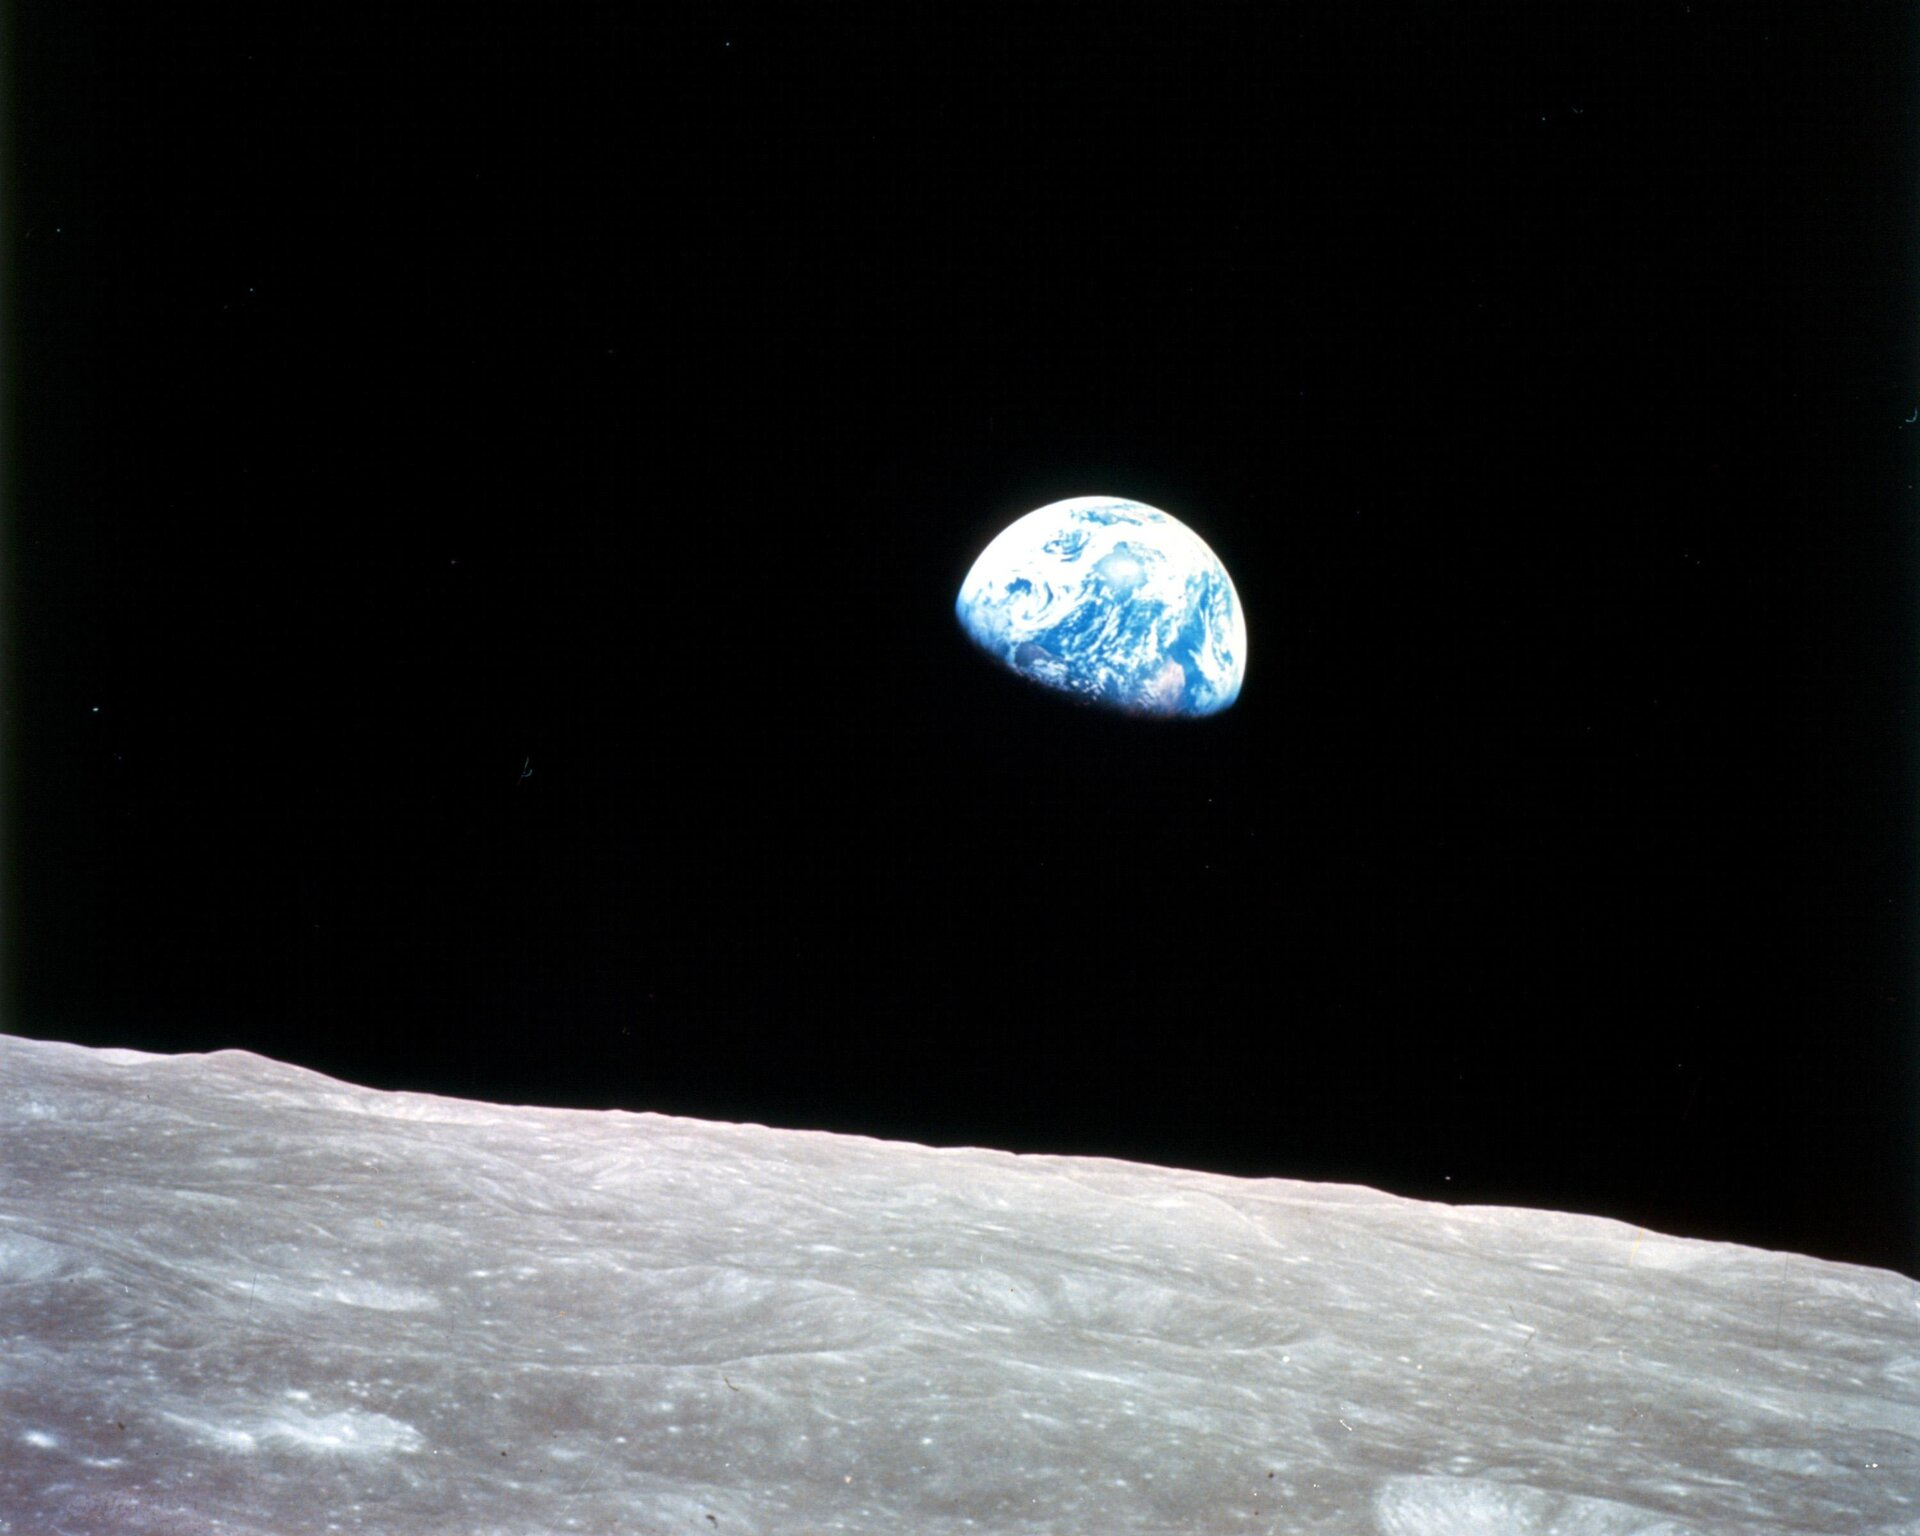 Die Earthrise-Aufnahme des NASA-Astronauten William Anders